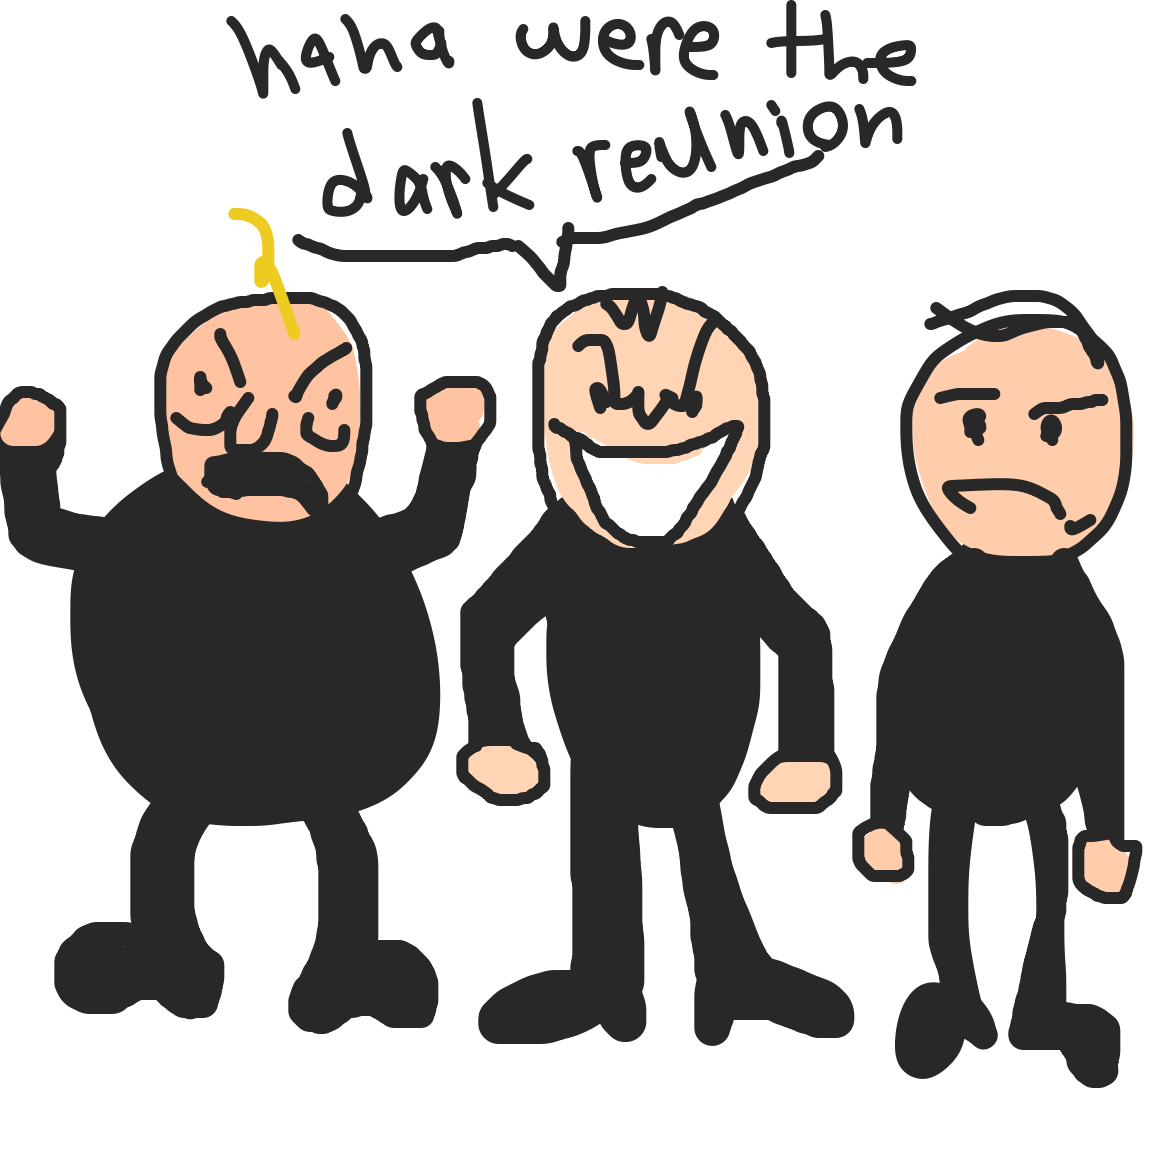 Oh look taromilkpudding, it's that dark reunion you keep talking about - Online Drawing Game Comic Strip Panel by Uugh